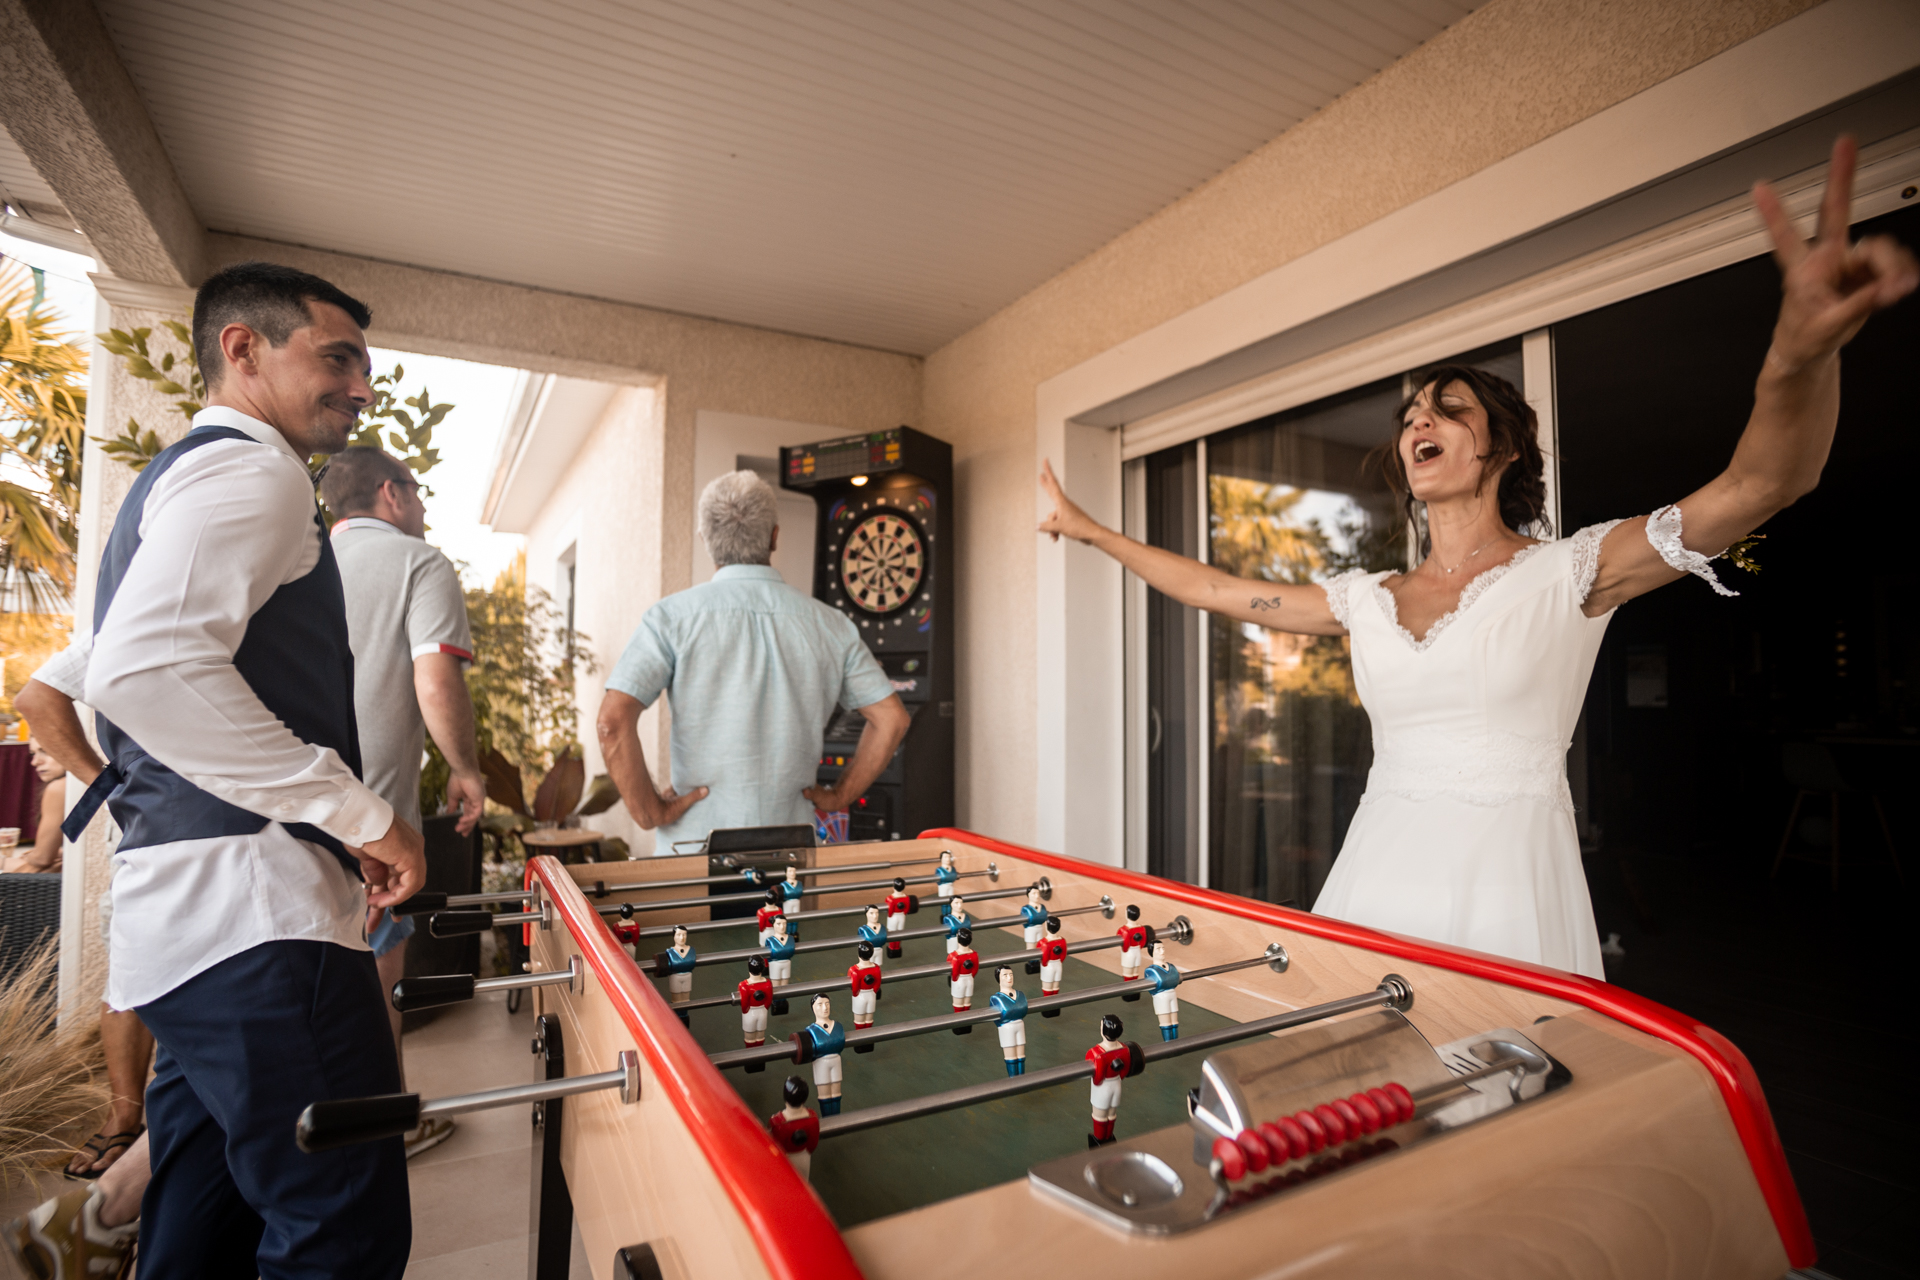 Wedding Photographers for France | During the cocktail hour they decided to play foosball